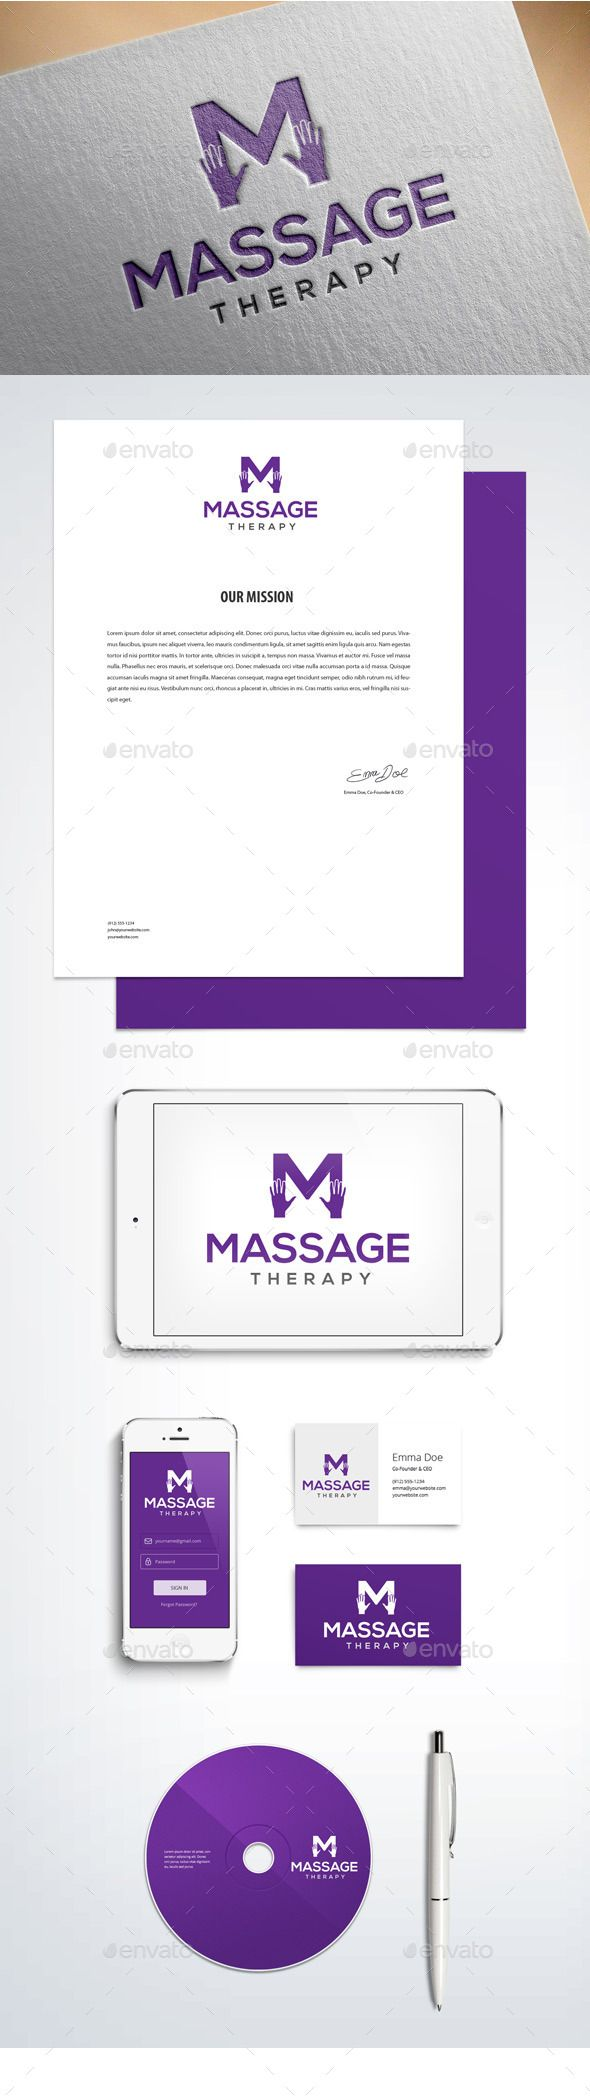 Massage and Physical Therapy Logo — Vector EPS #help #recovery • Available here → https://graphicriver.net/item/massage-and-physical-therapy-logo/9453066?ref=pxcr